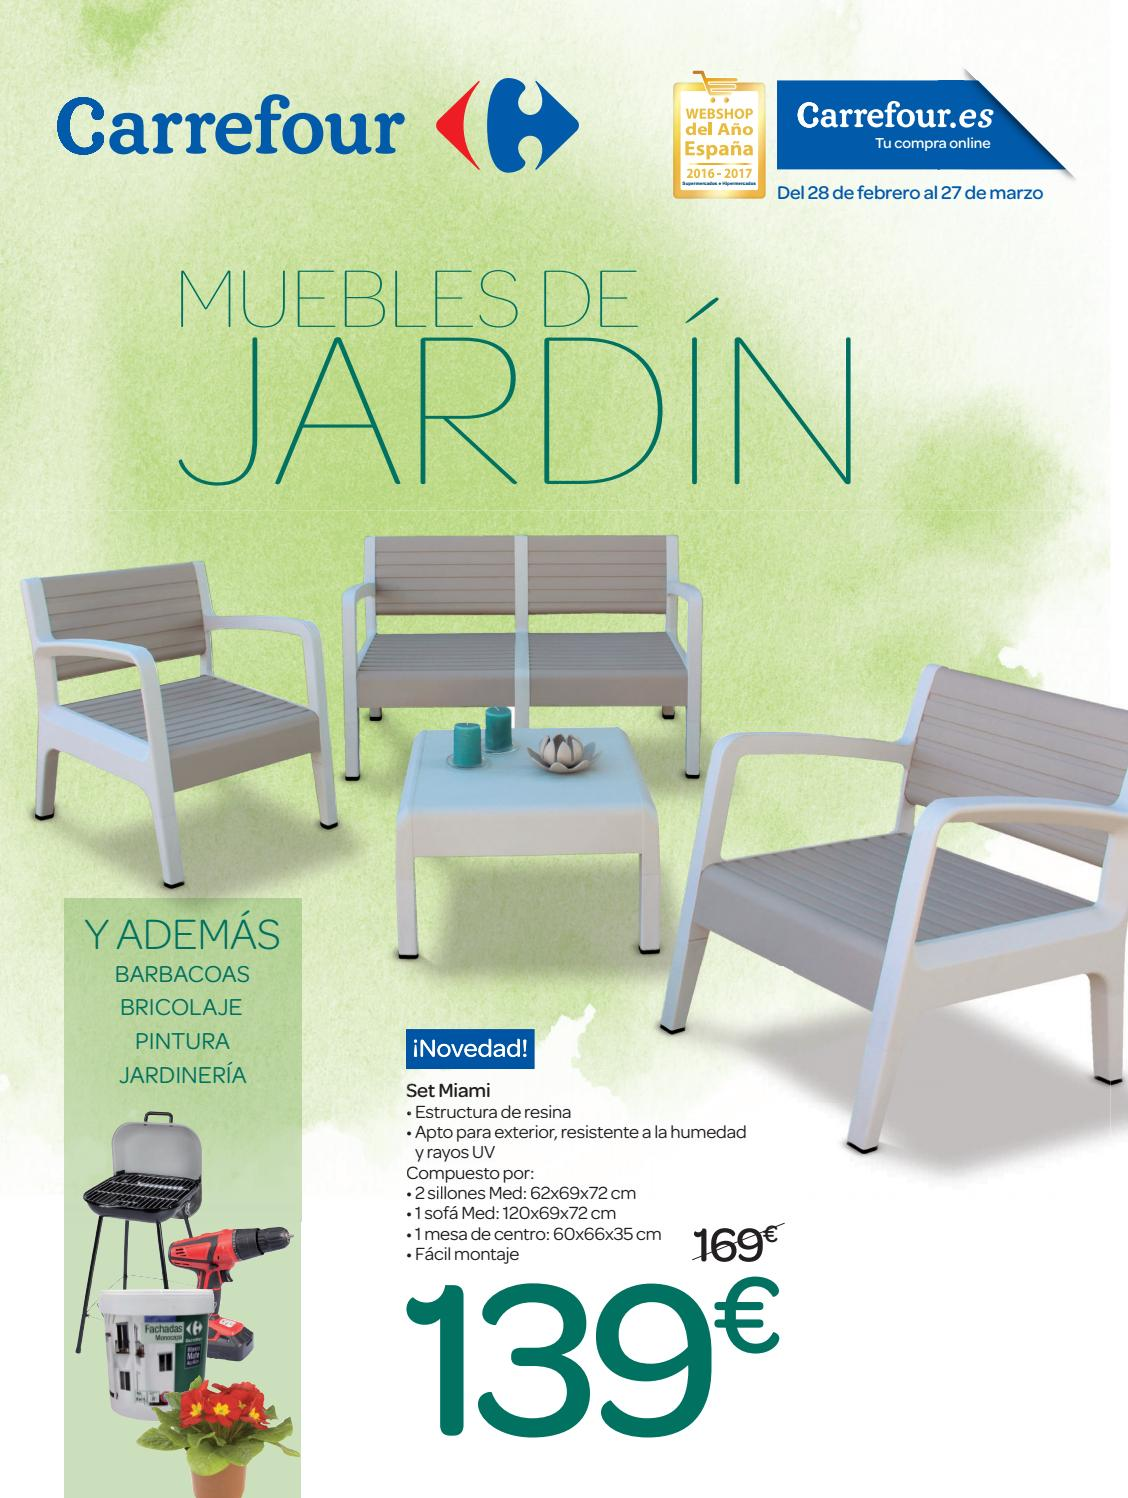 Muebles de jardin carrefour by ofertas supermercados issuu for Carrefour online muebles jardin